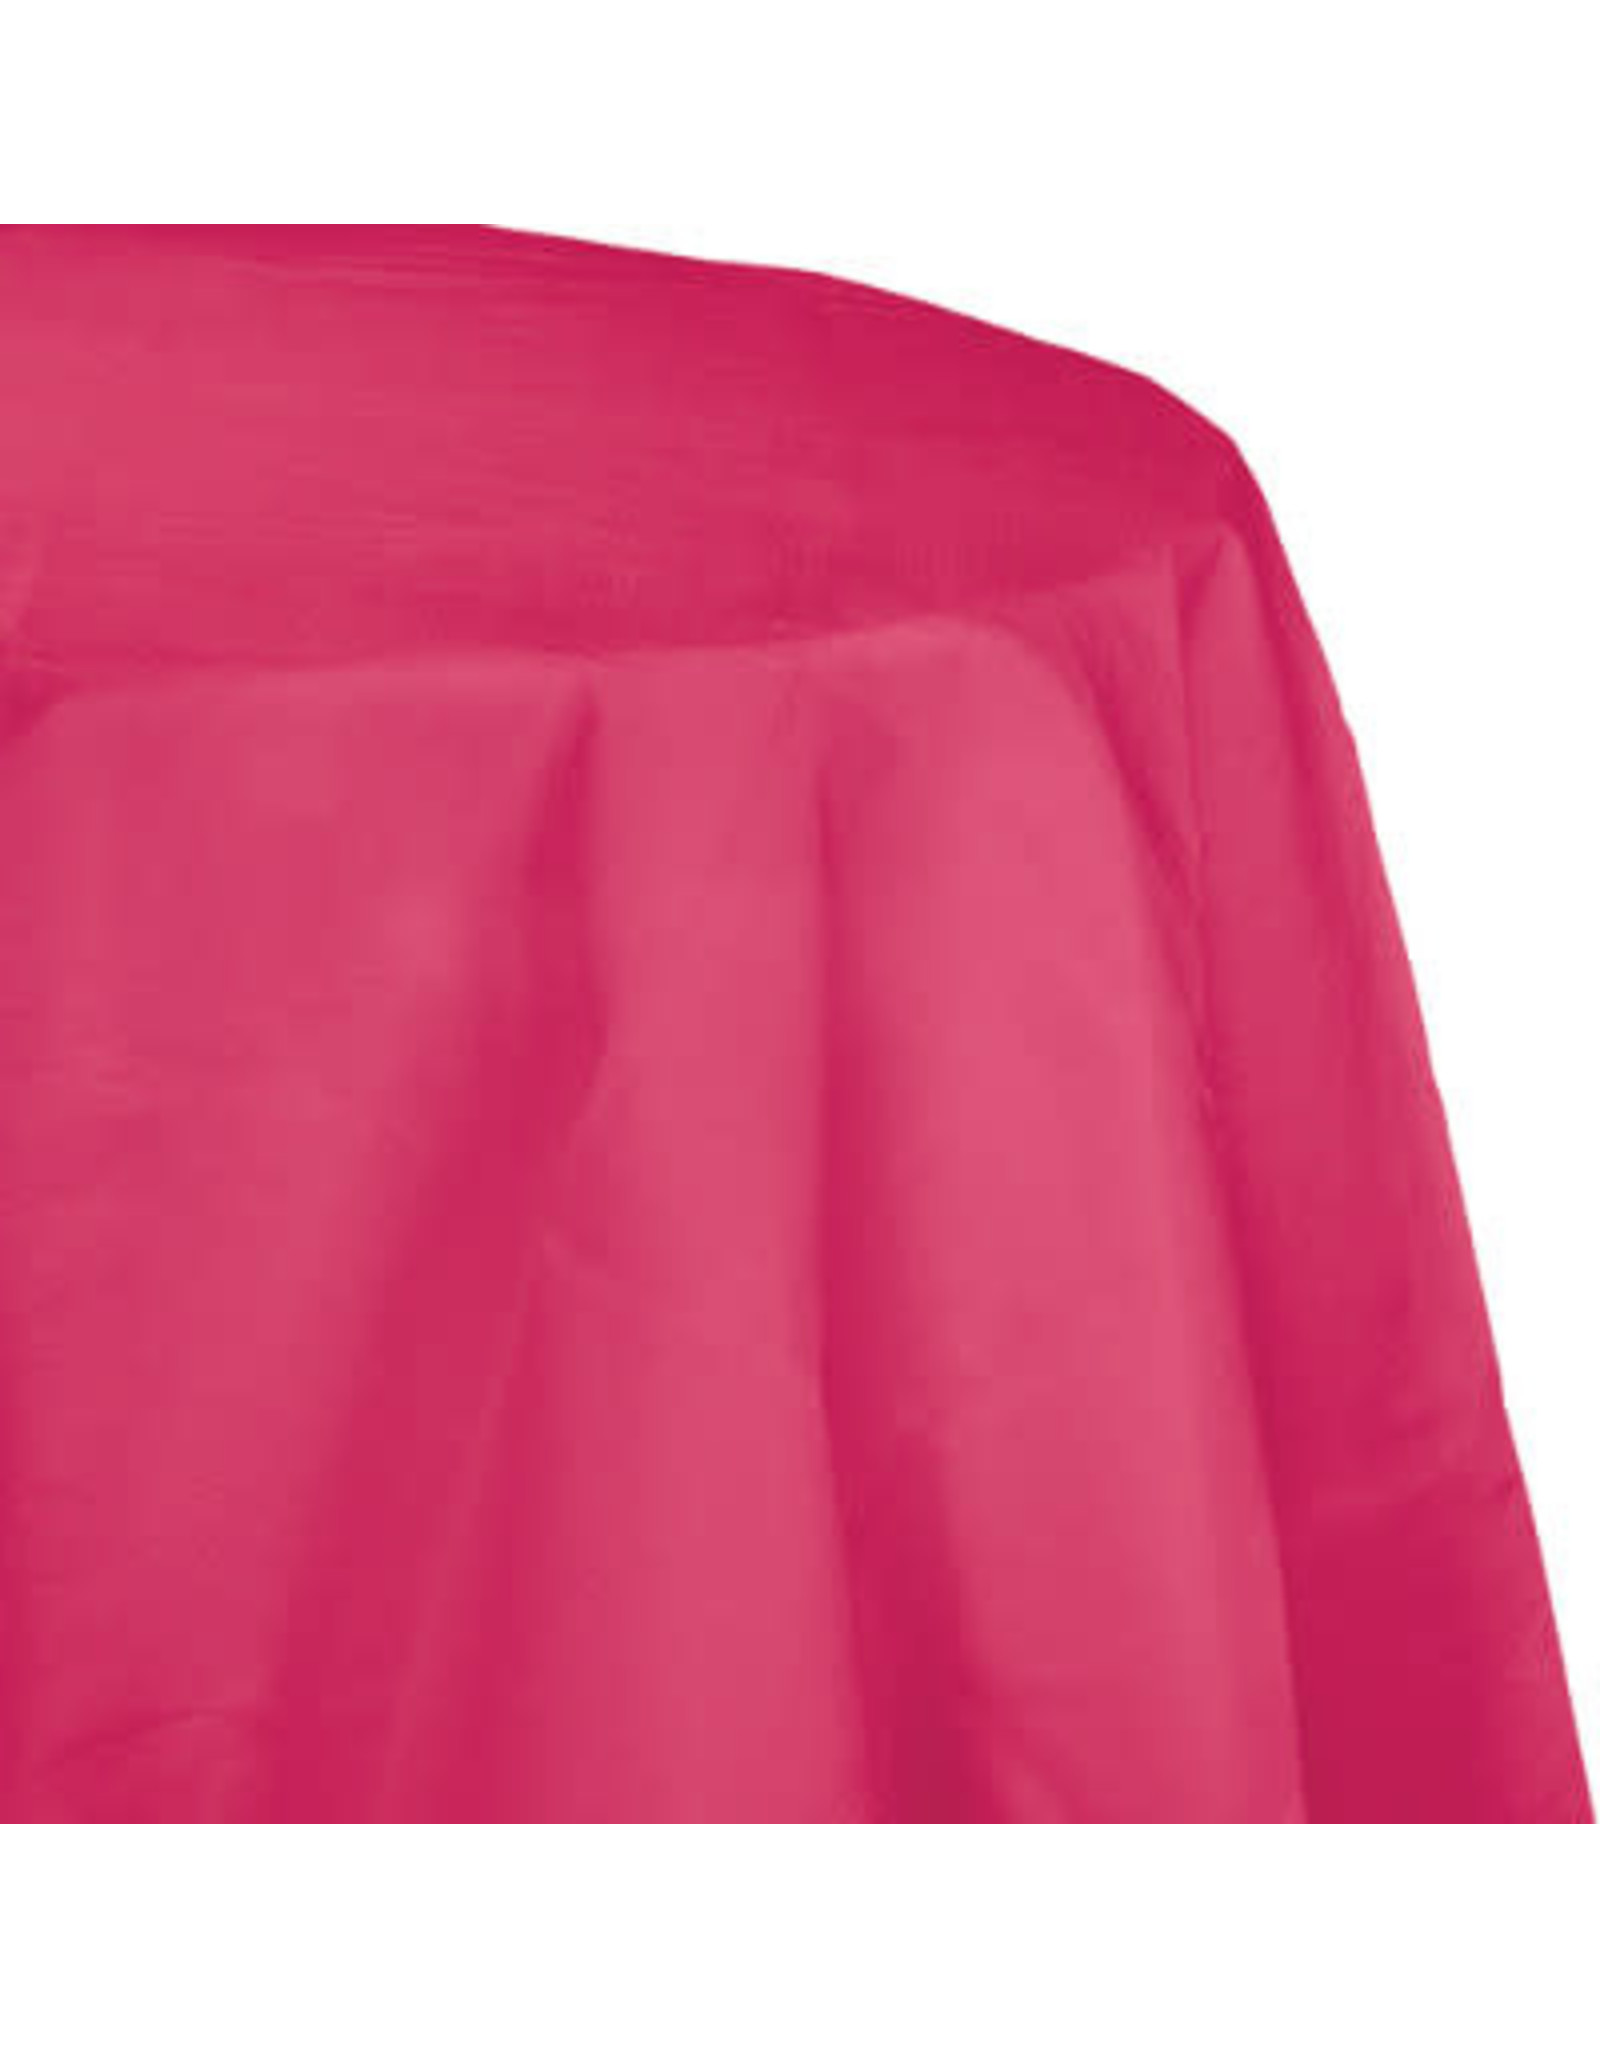 Touch of Color HOT MAGENTA PINK OCTY ROUND PAPER TABLECLOTH